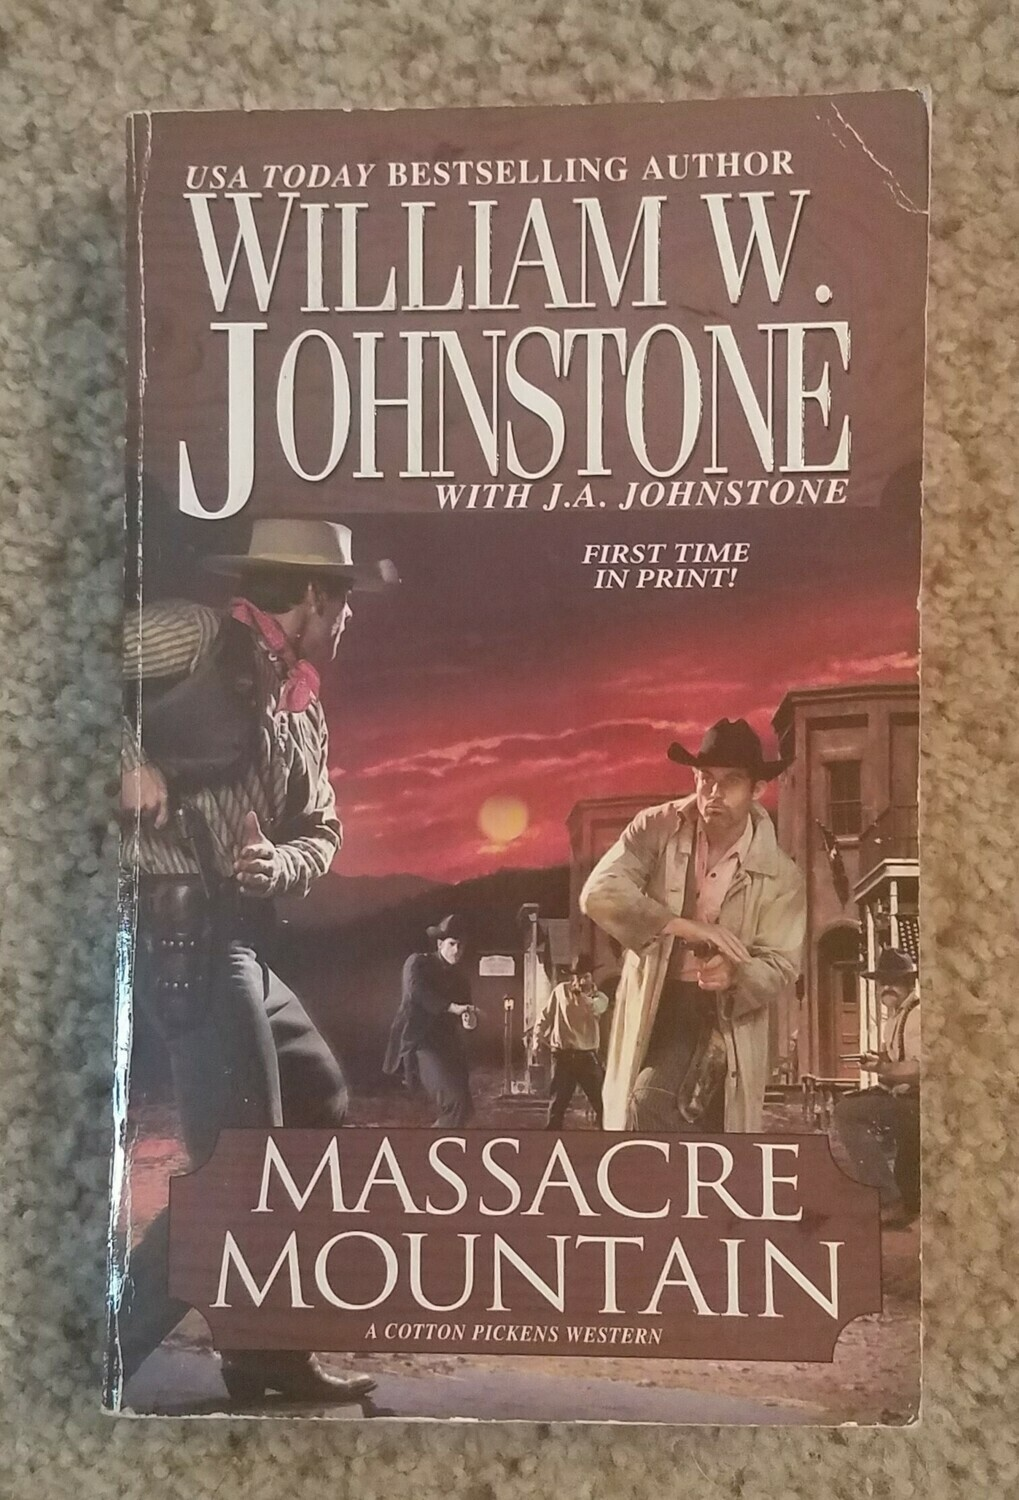 Massacre Mountain by William W. Johnstone with J.A. Johnstone